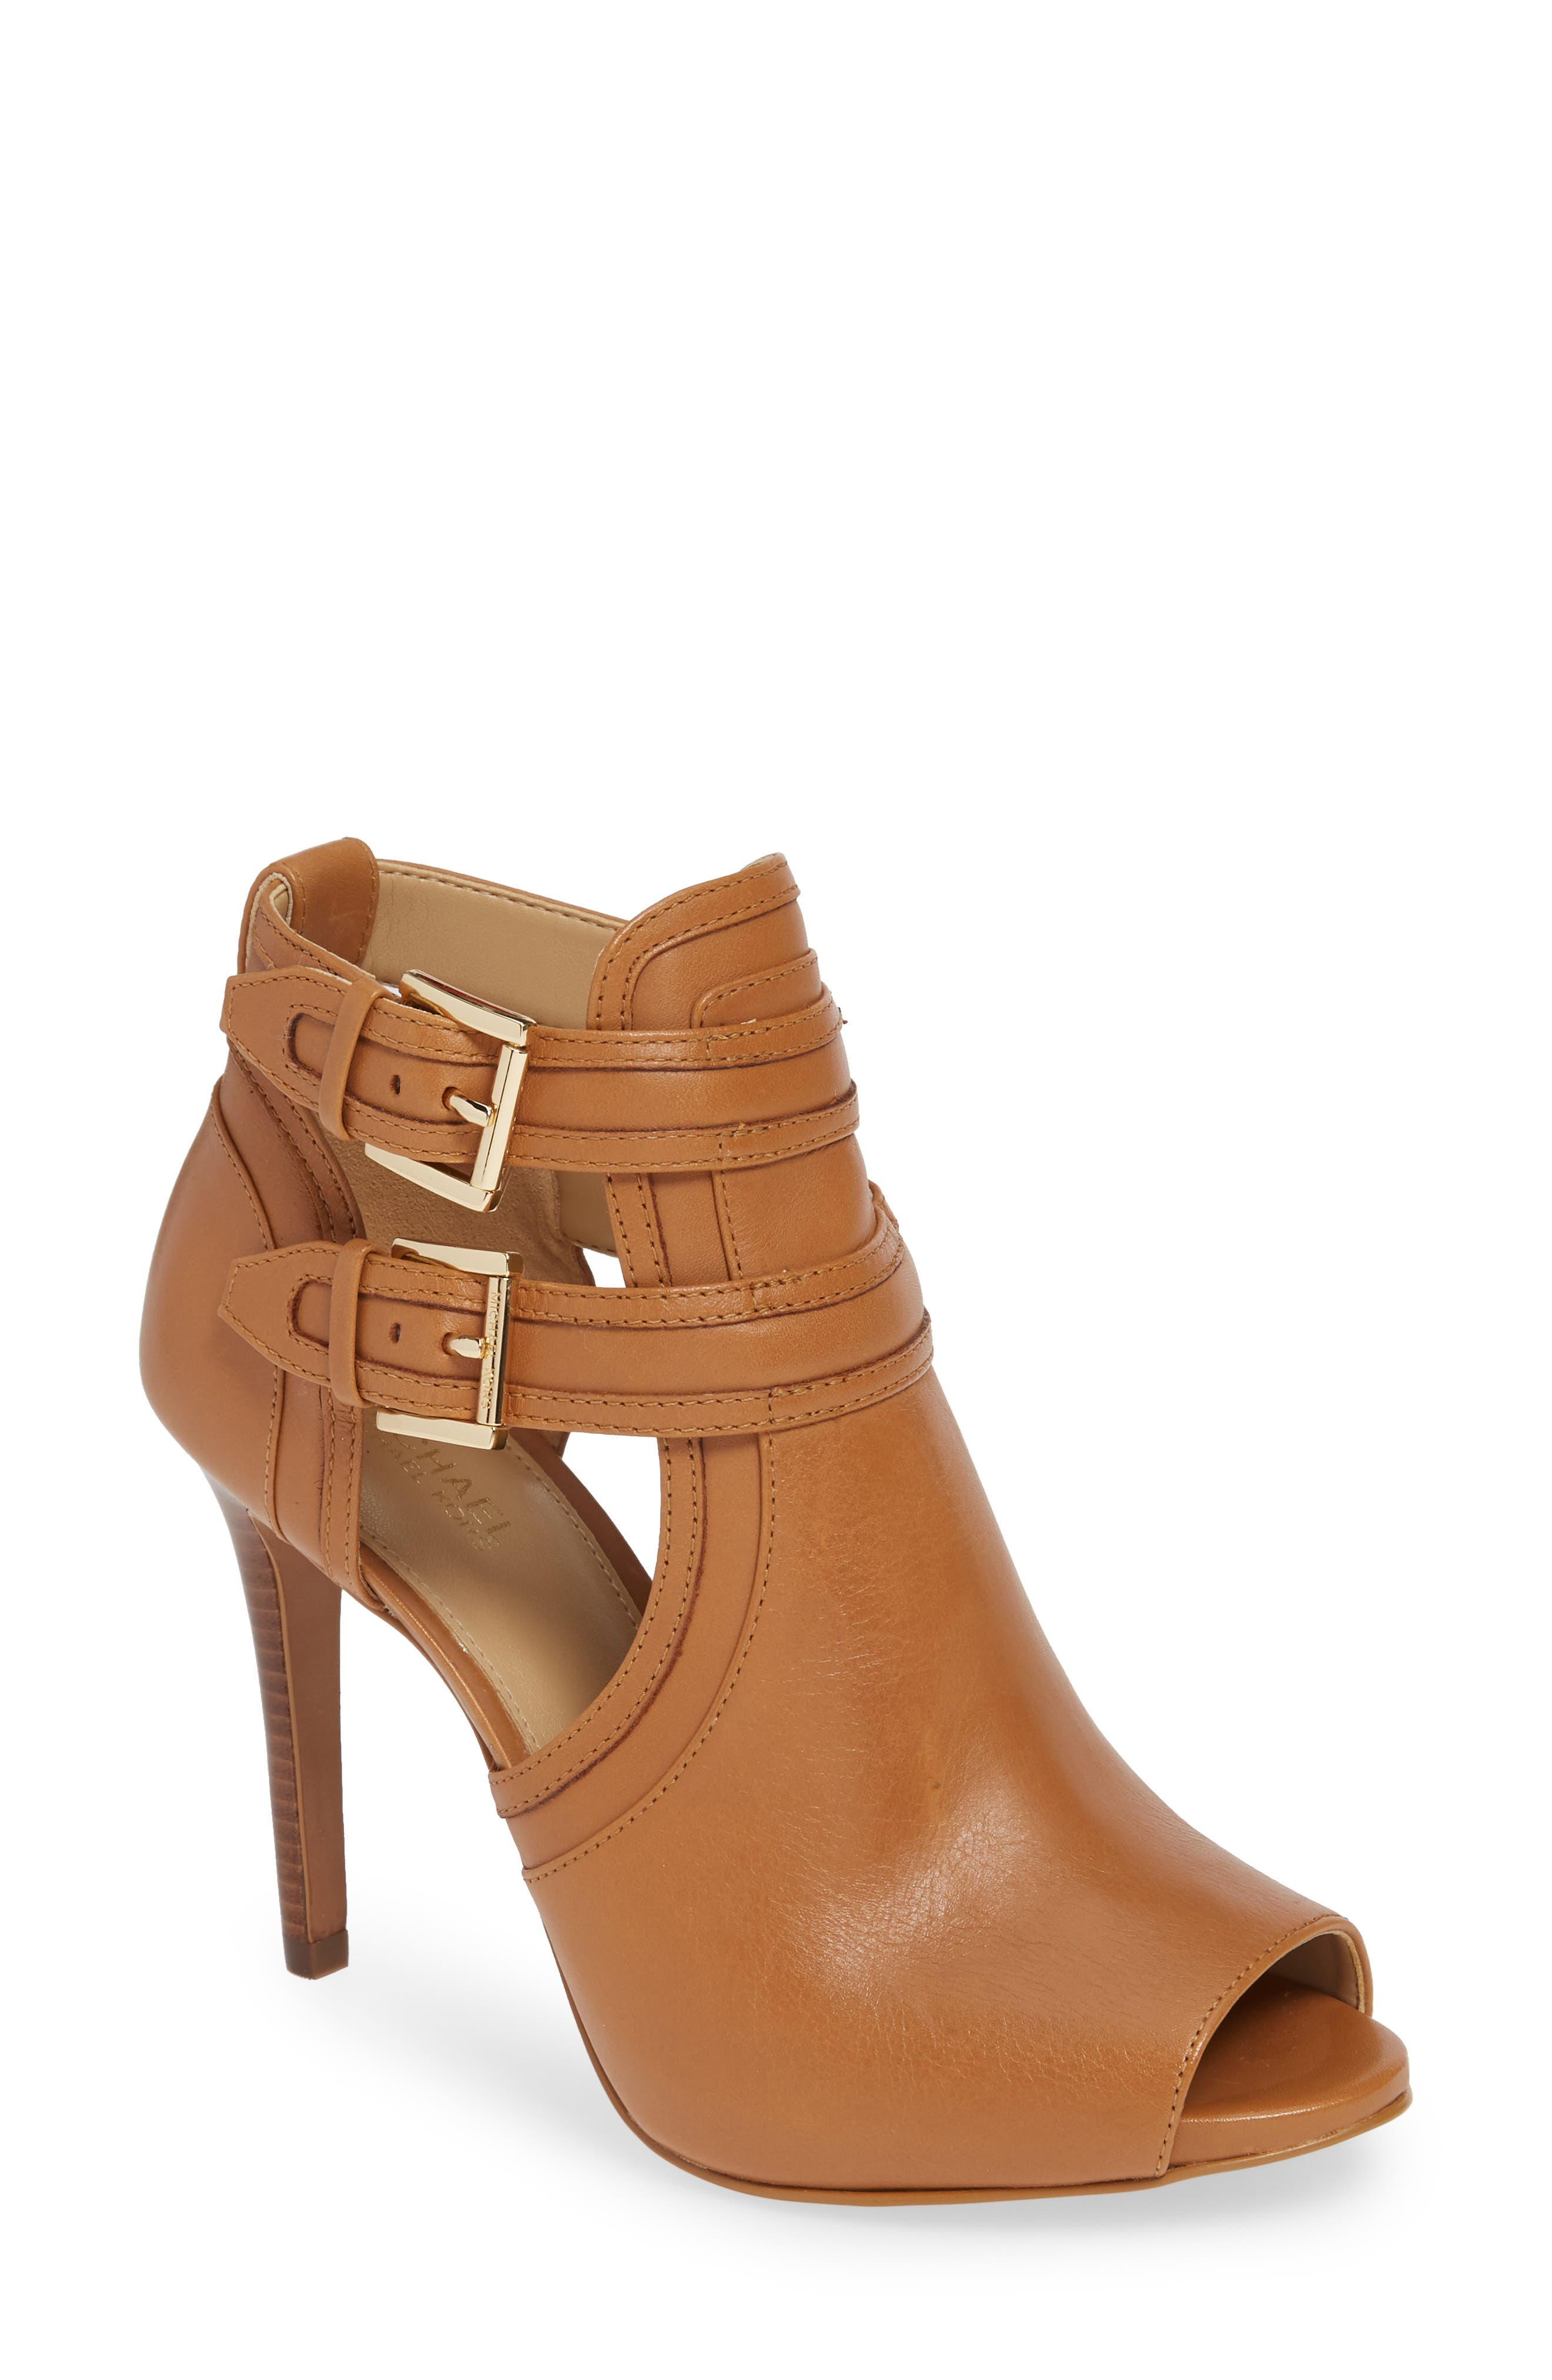 MICHAEL MICHAEL KORS, Blaze Peep Toe Buckle Bootie, Main thumbnail 1, color, ACORN LEATHER